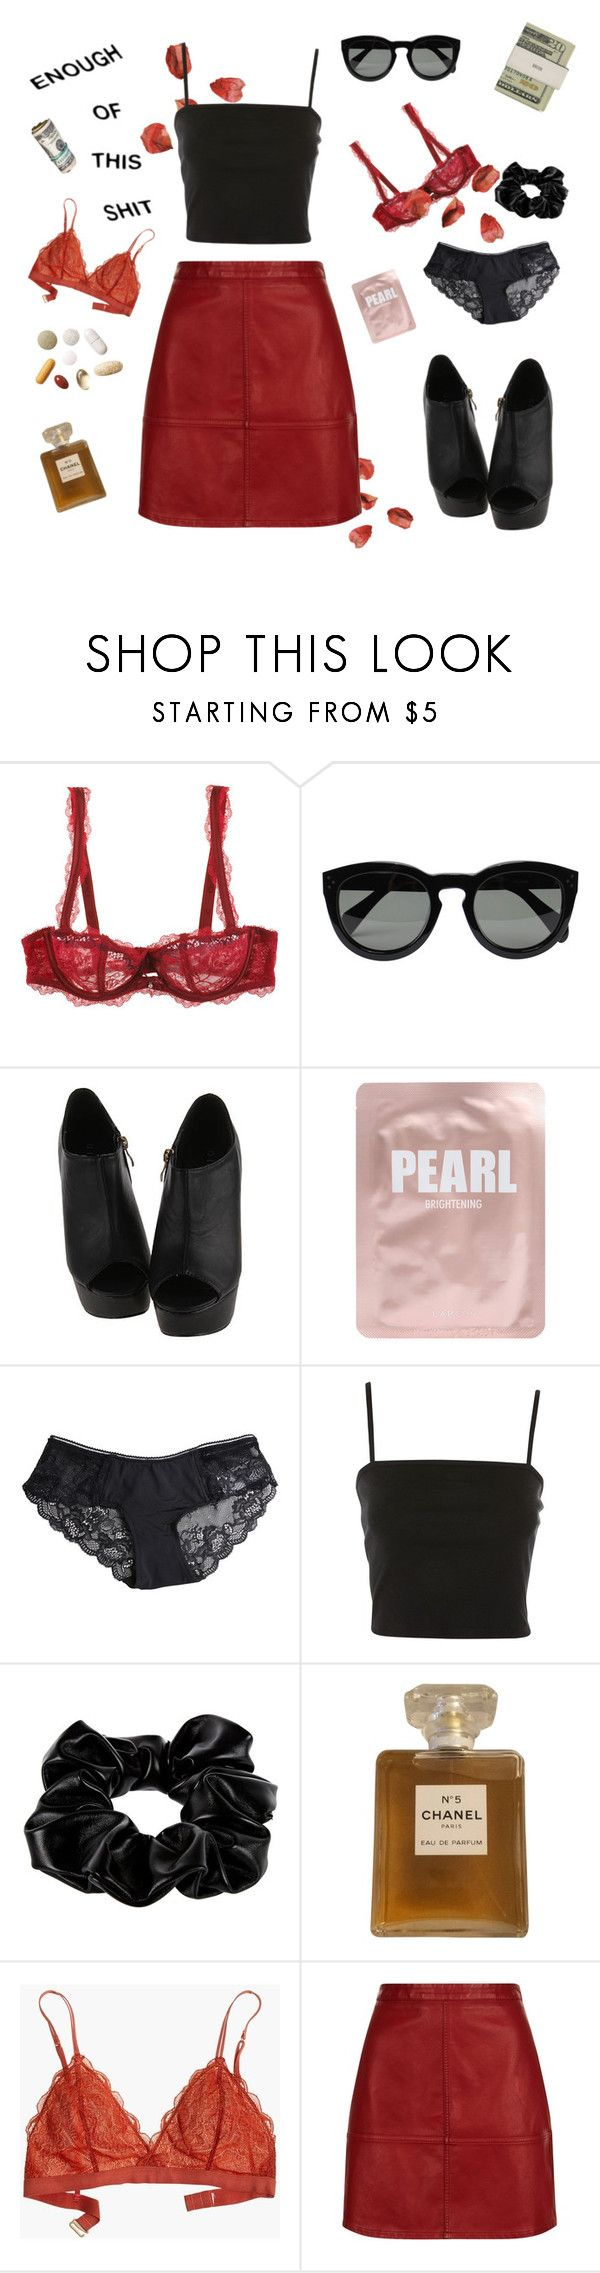 """chanel"" by peachdelrey ❤ liked on Polyvore featuring Chantelle, Jack Spade, CÉLINE, Lapcos, Pieces, Topshop, River Island, Chanel, Madewell and Guide London"